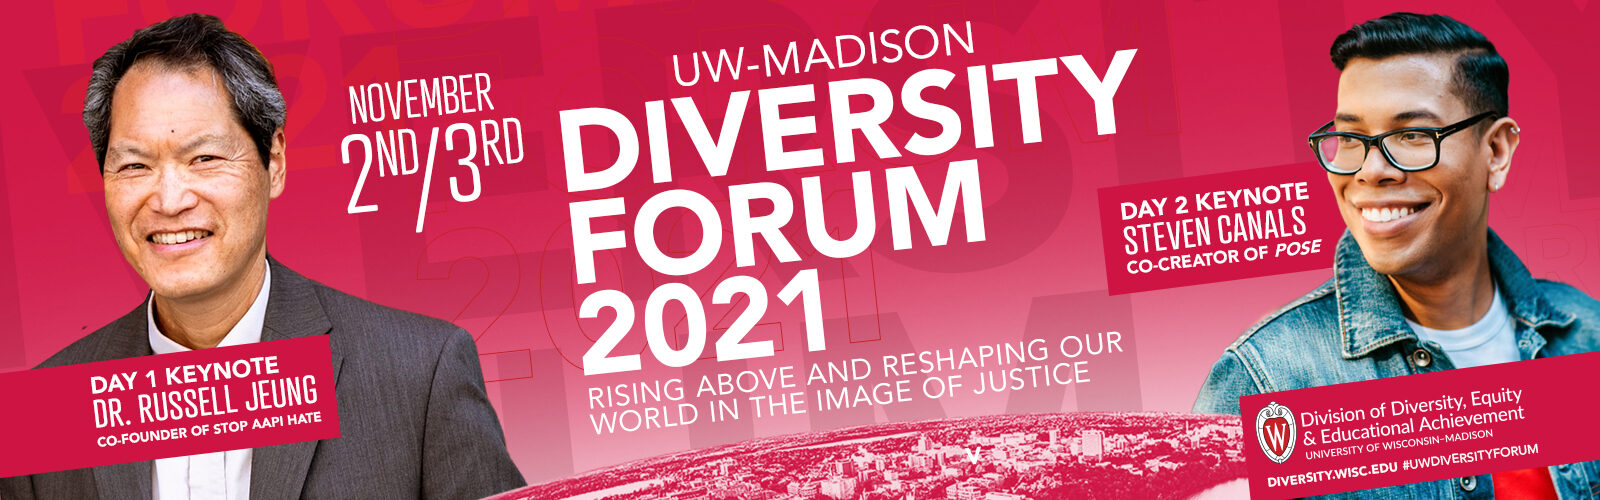 """Diversity Forum 2021 graphic with the text """"UW–Madison Diversity Forum 2021, November 2nd and 3rd. Day 1 keynote - Dr. Russell Jeung, co-founder of Stop AAPI Hate. Day 2 keynote - Steven Canals, co-creator of Pose."""""""